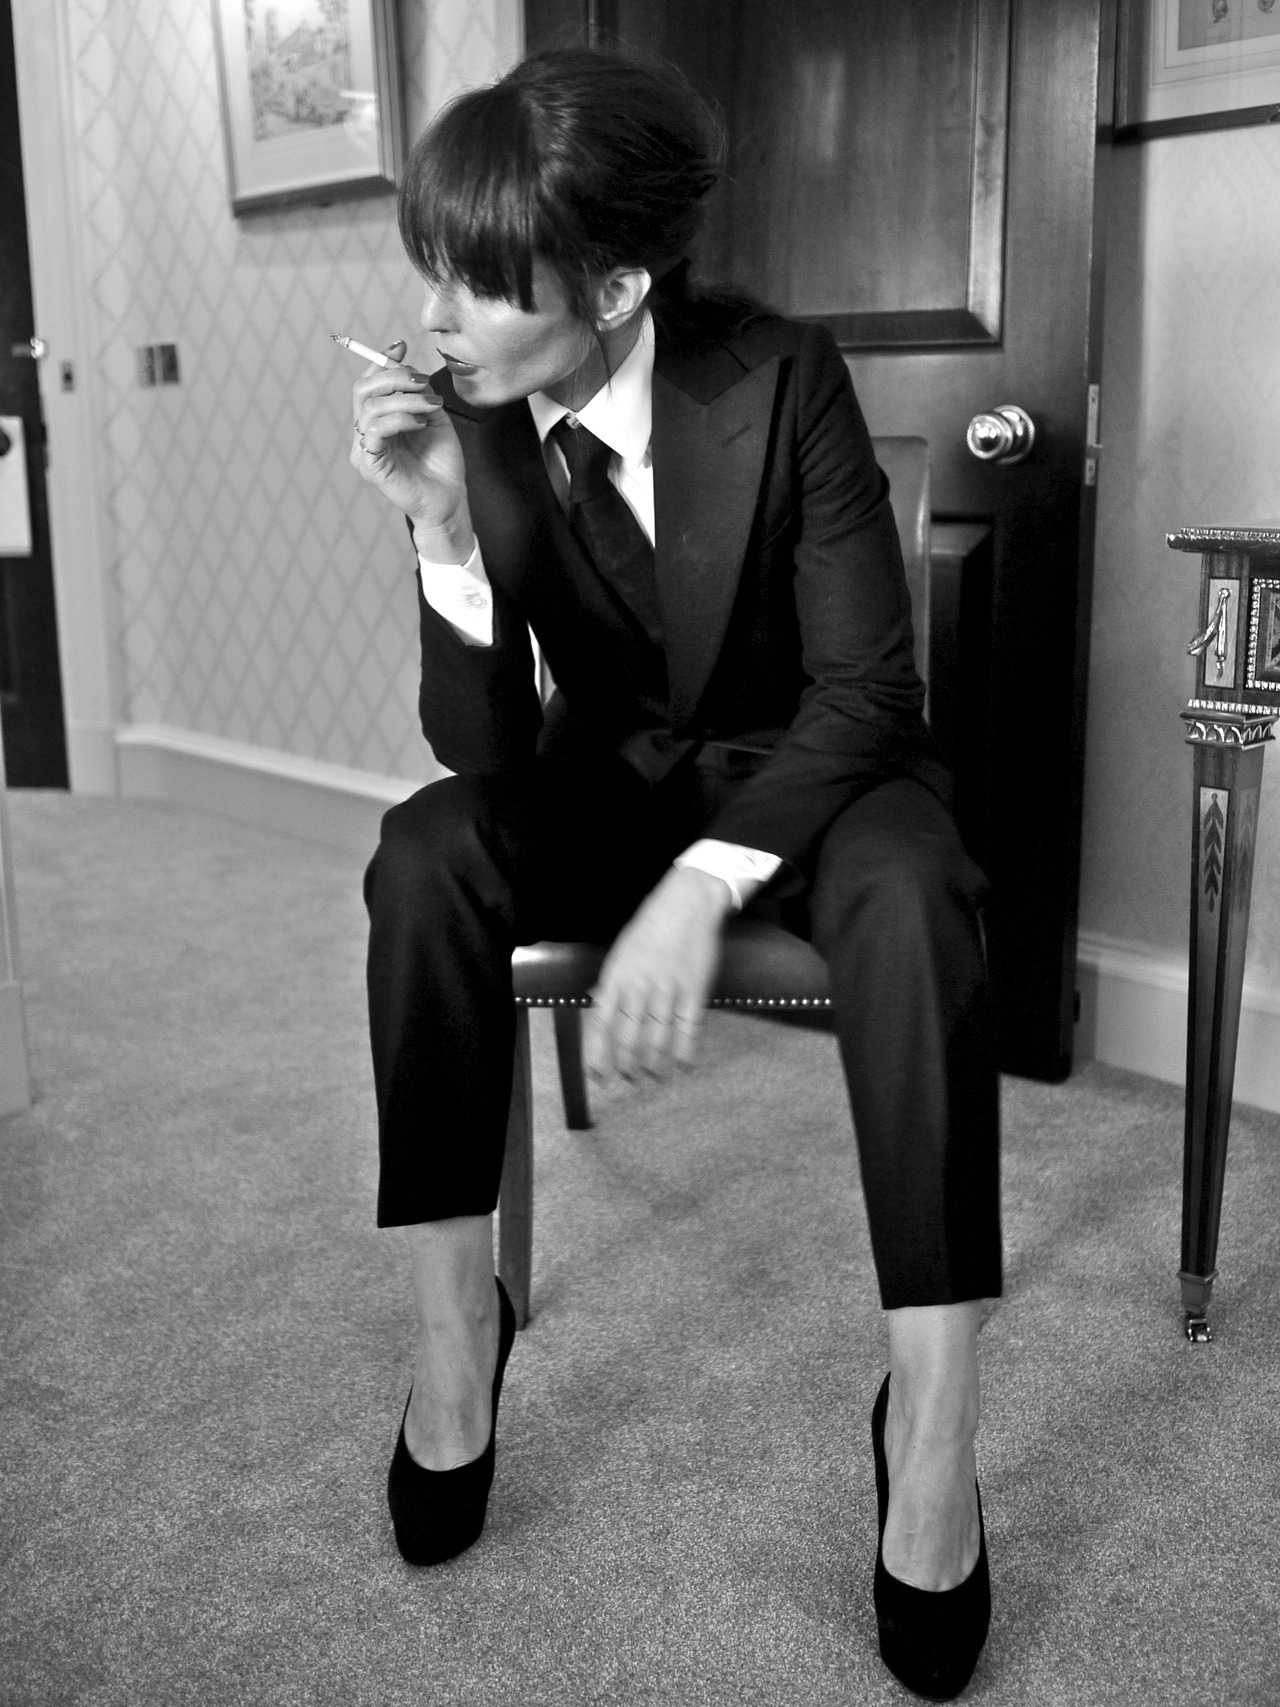 thisisnotasuit:  Menswear for Women Noomi Rapace wears black W1 Tuxedo Suit by A. Sauvage Photography: Adrien Sauvage